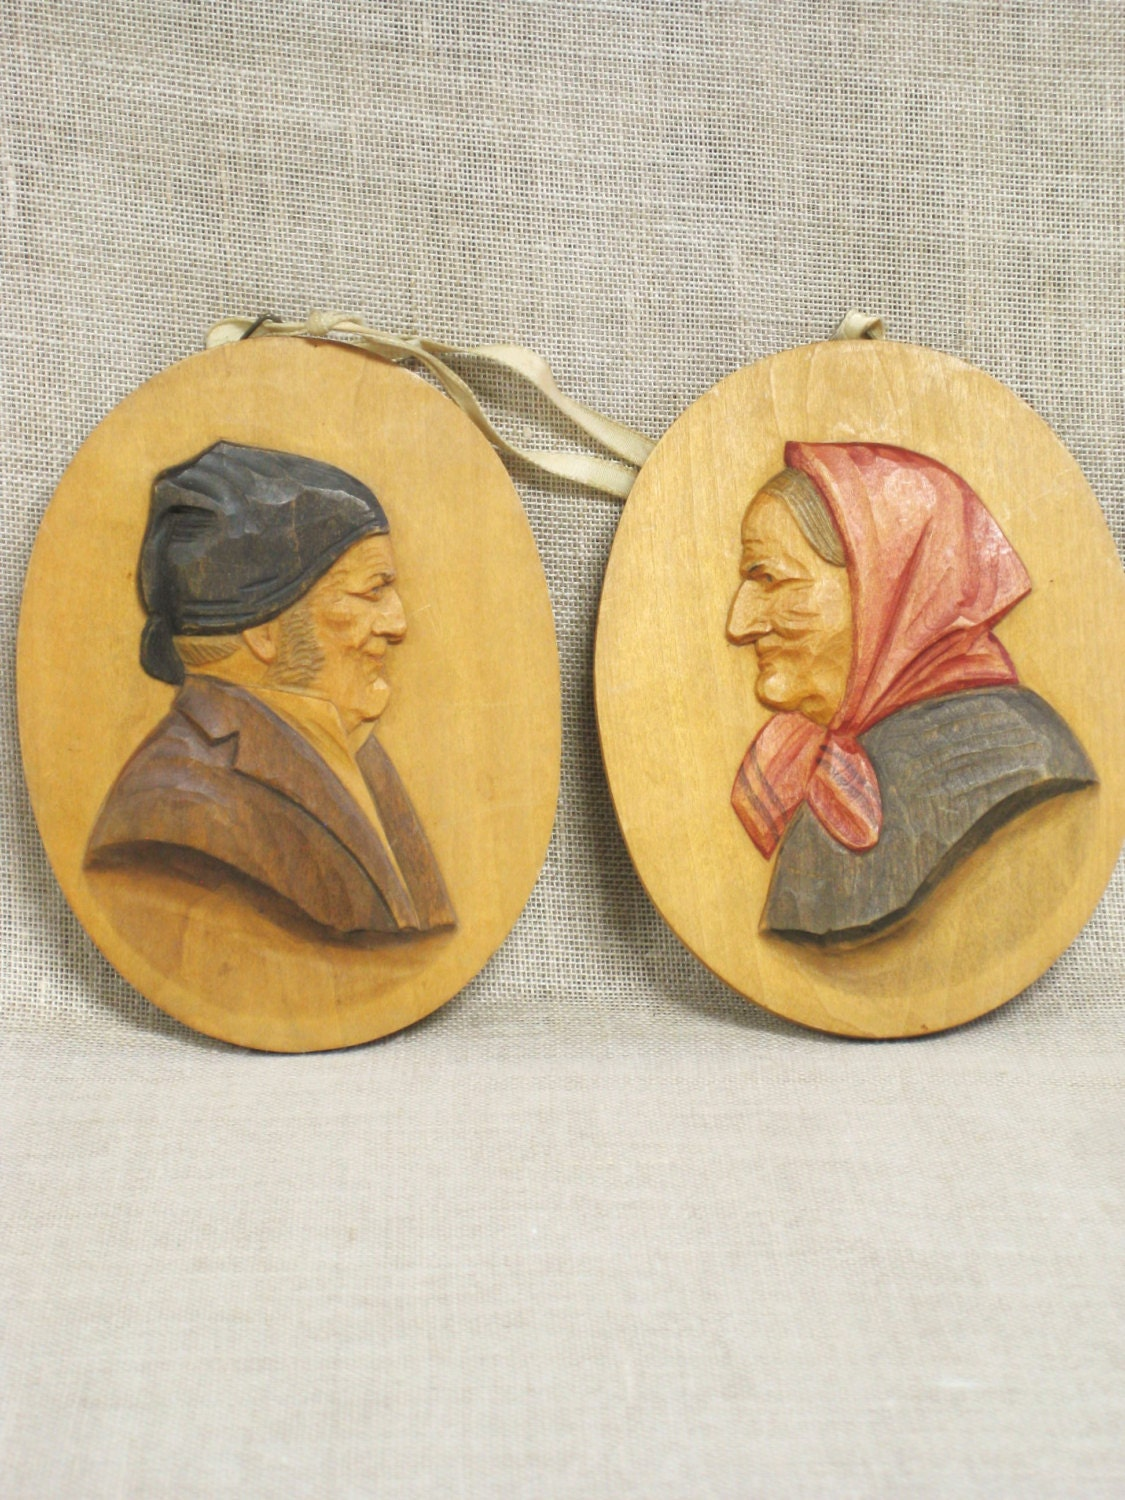 Antique Folk Art Carved Wooden Plaques Wall Decor Male